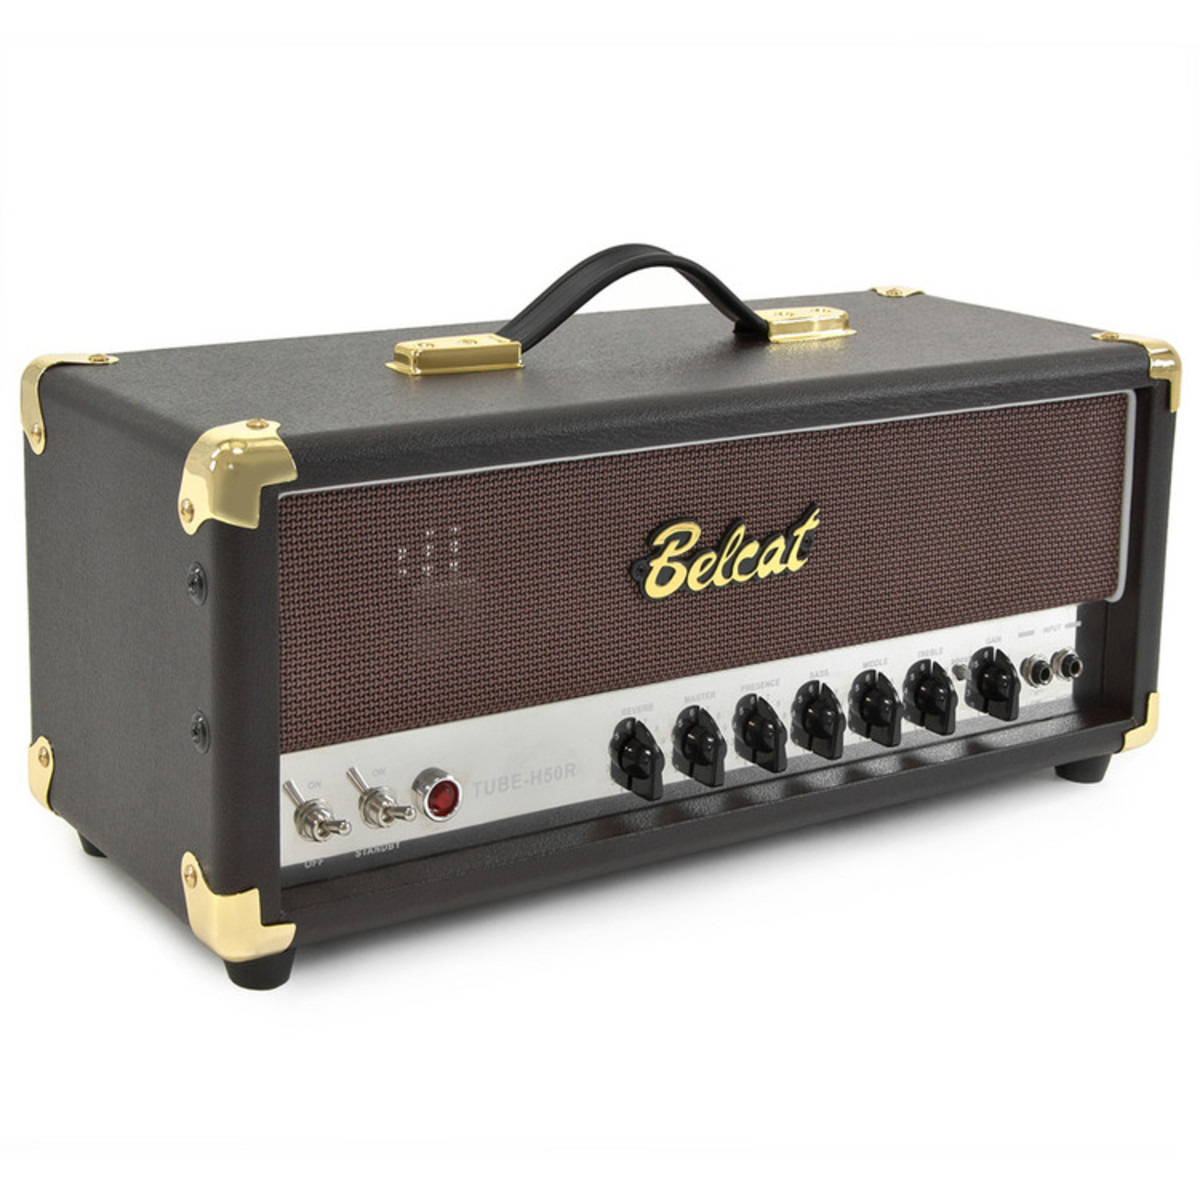 belcat tube h50r 50w valve guitar amp head at gear4music. Black Bedroom Furniture Sets. Home Design Ideas